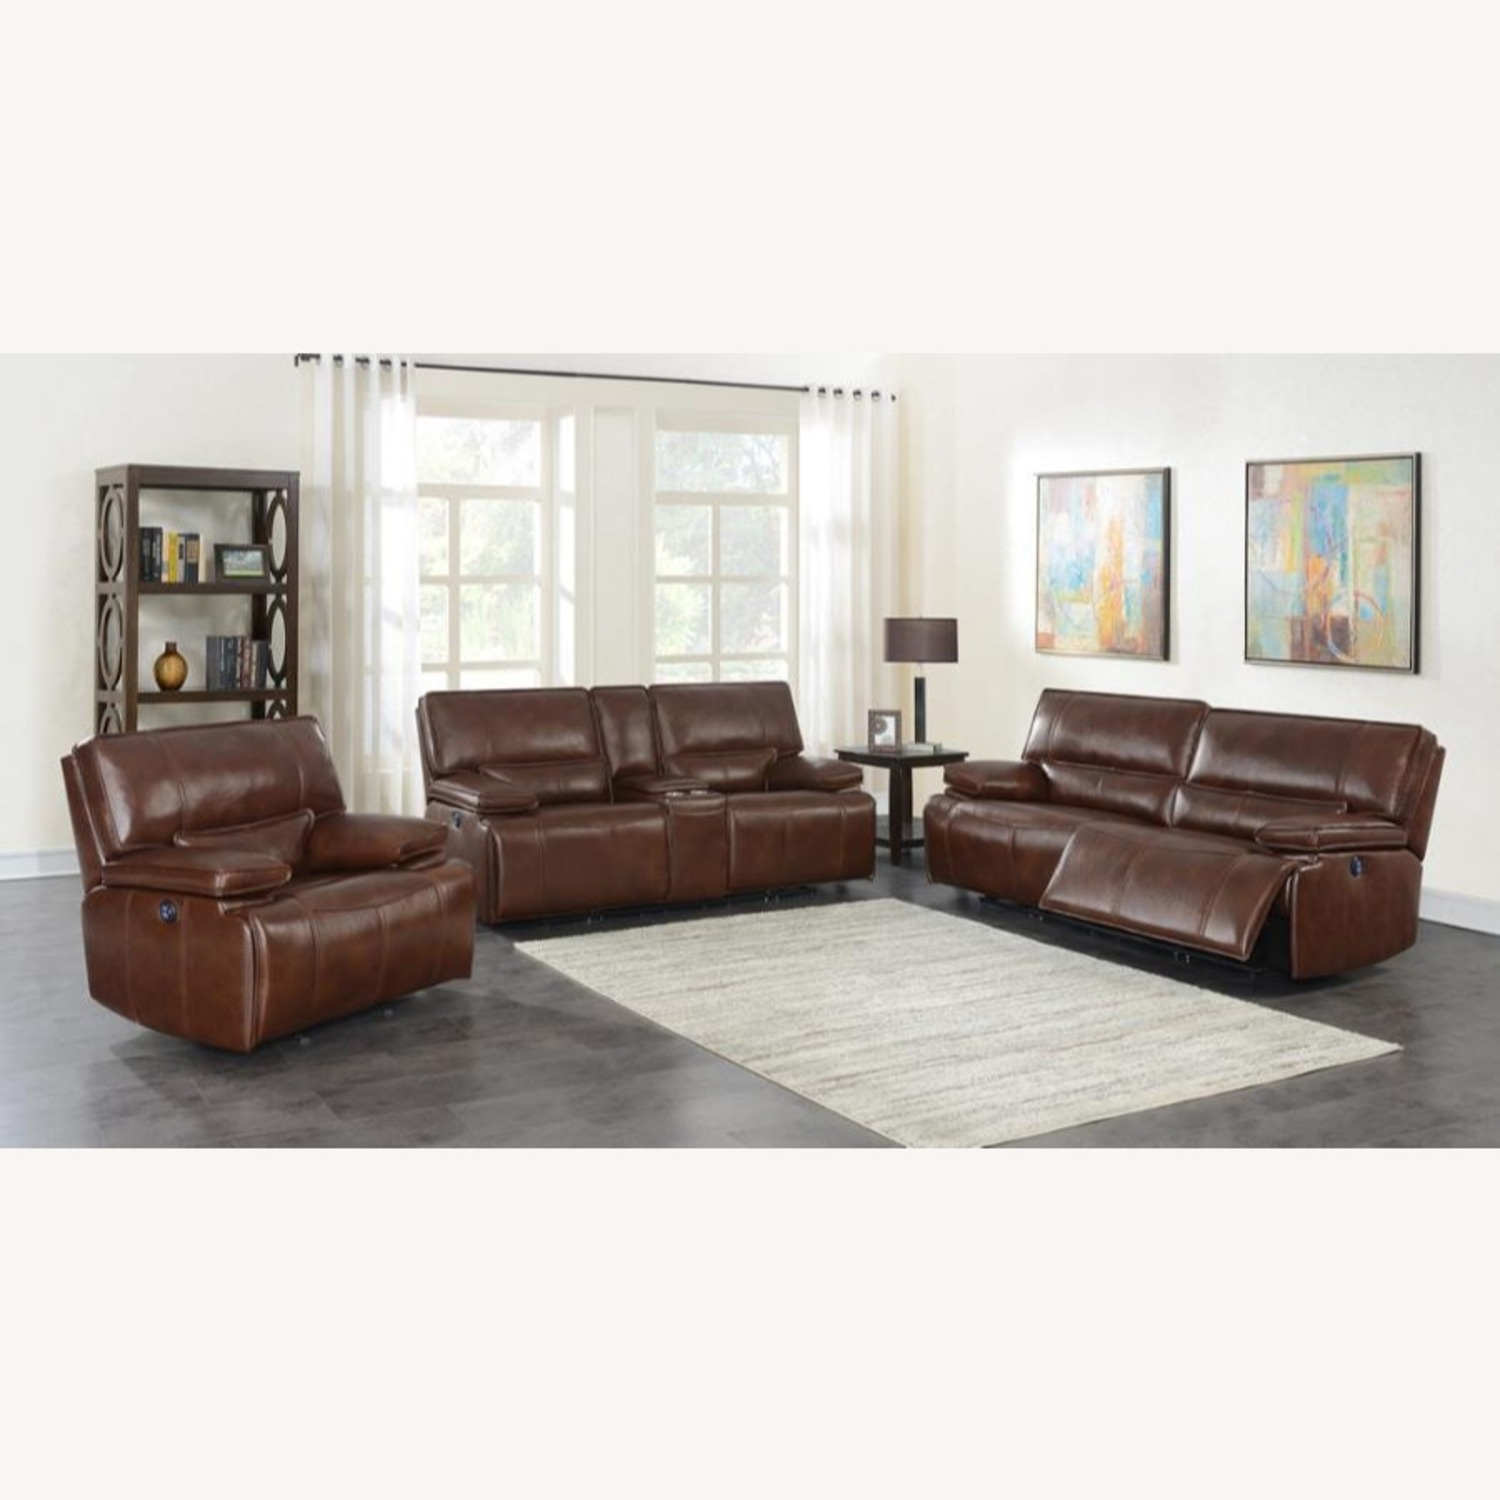 Power Loveseat In Saddle Brown W/ Console - image-9